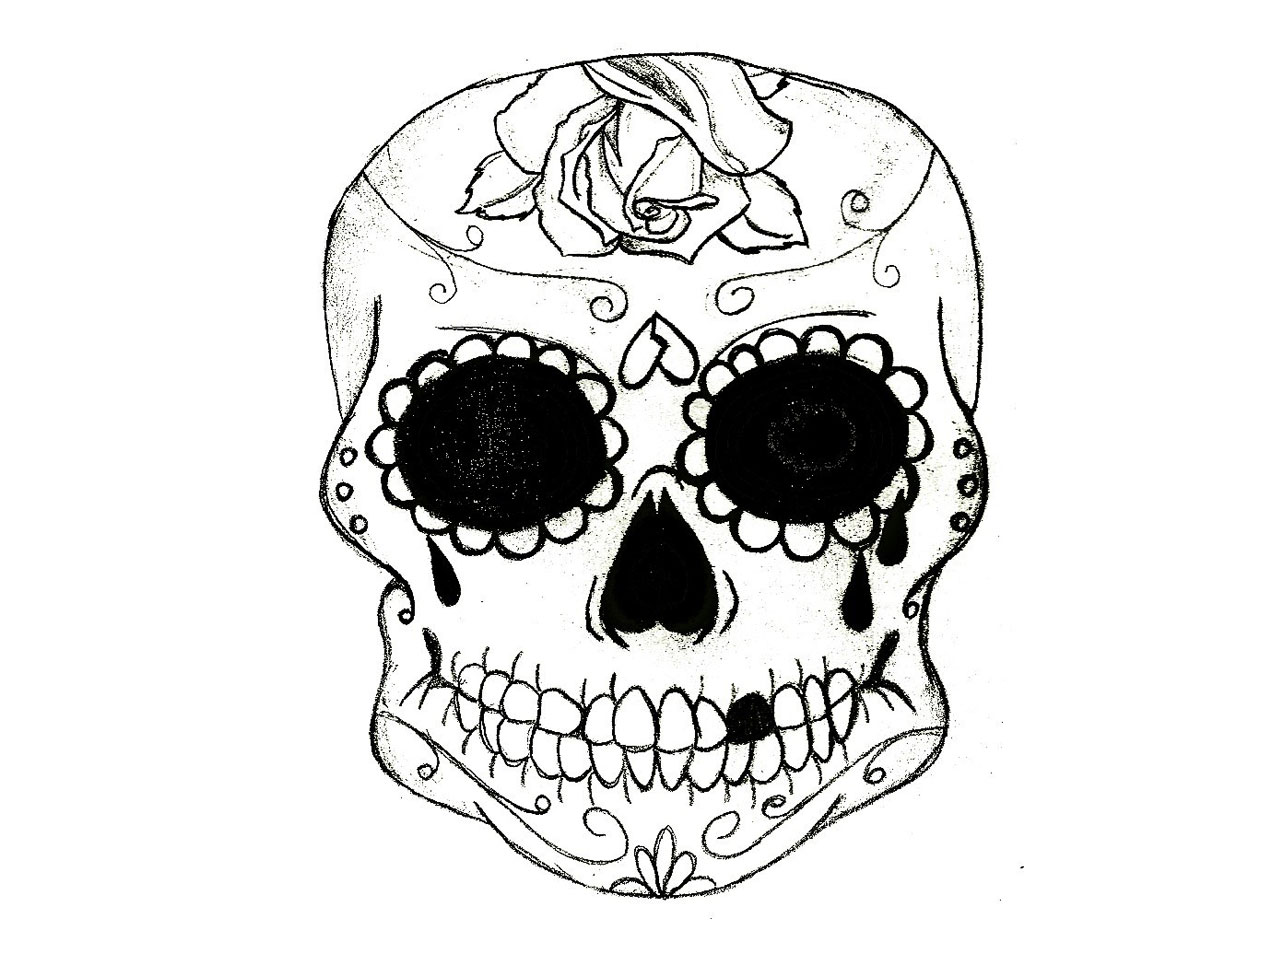 1280x960 Index Of Wp Contentgallerycategory Skull Tattoos